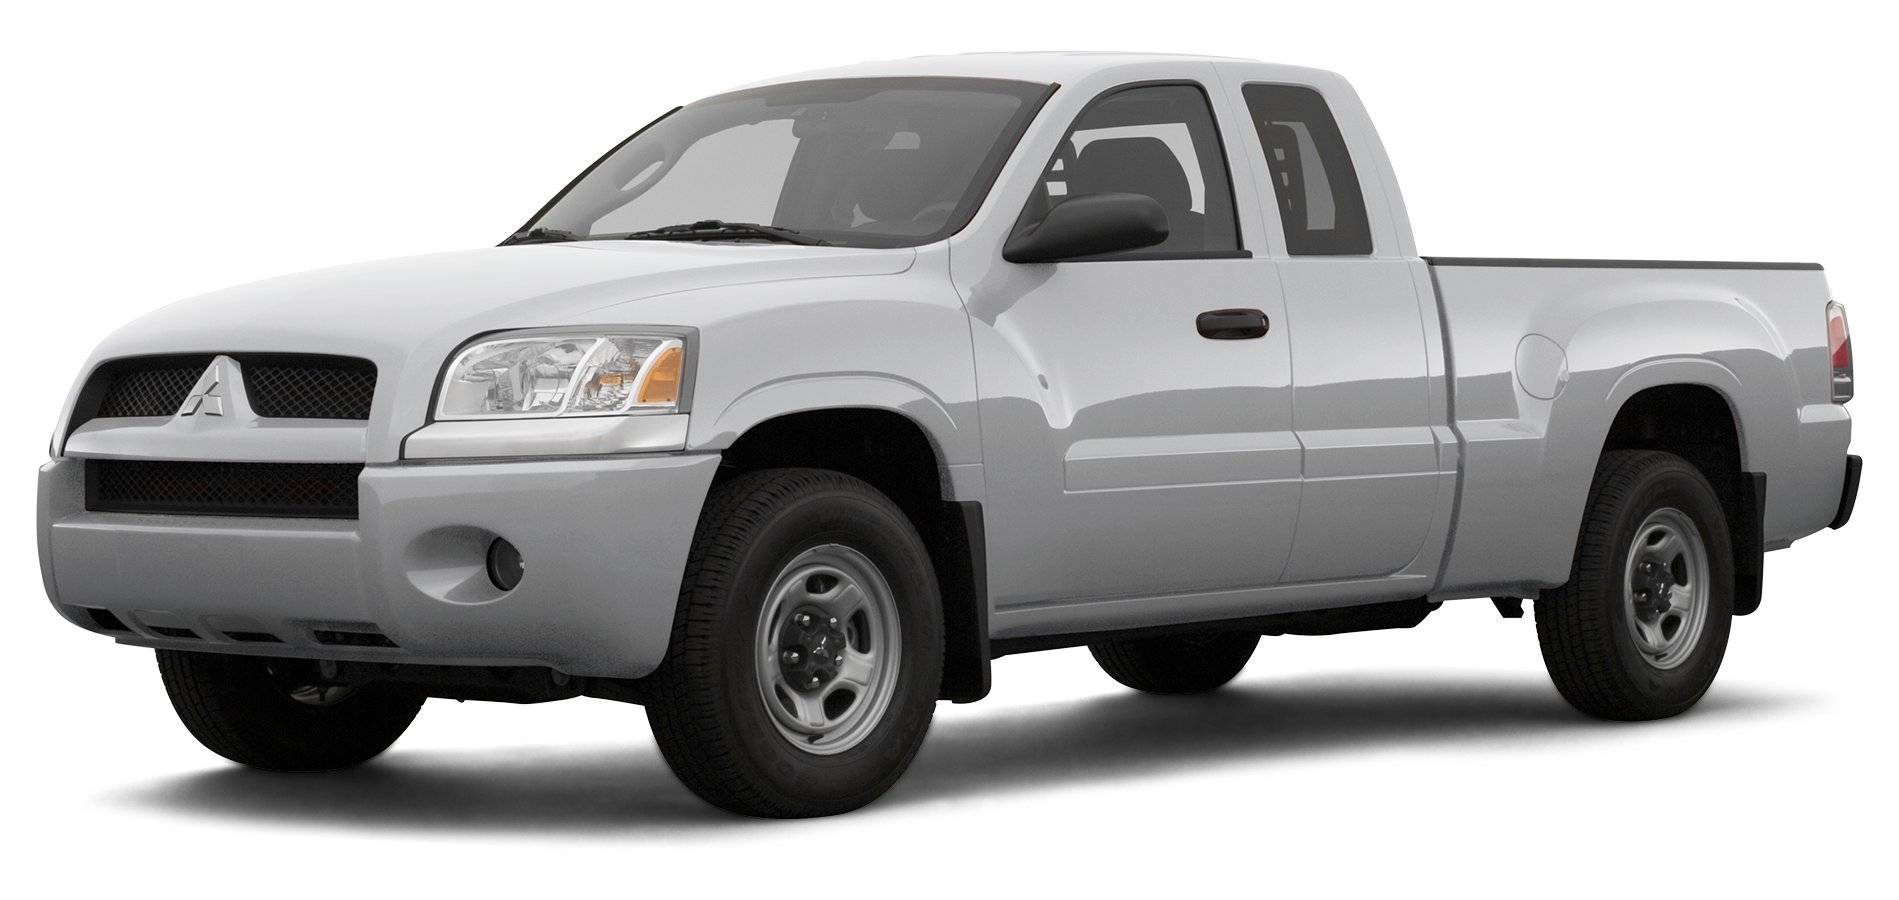 Amazon com: 2007 GMC Sierra 1500 Reviews, Images, and Specs